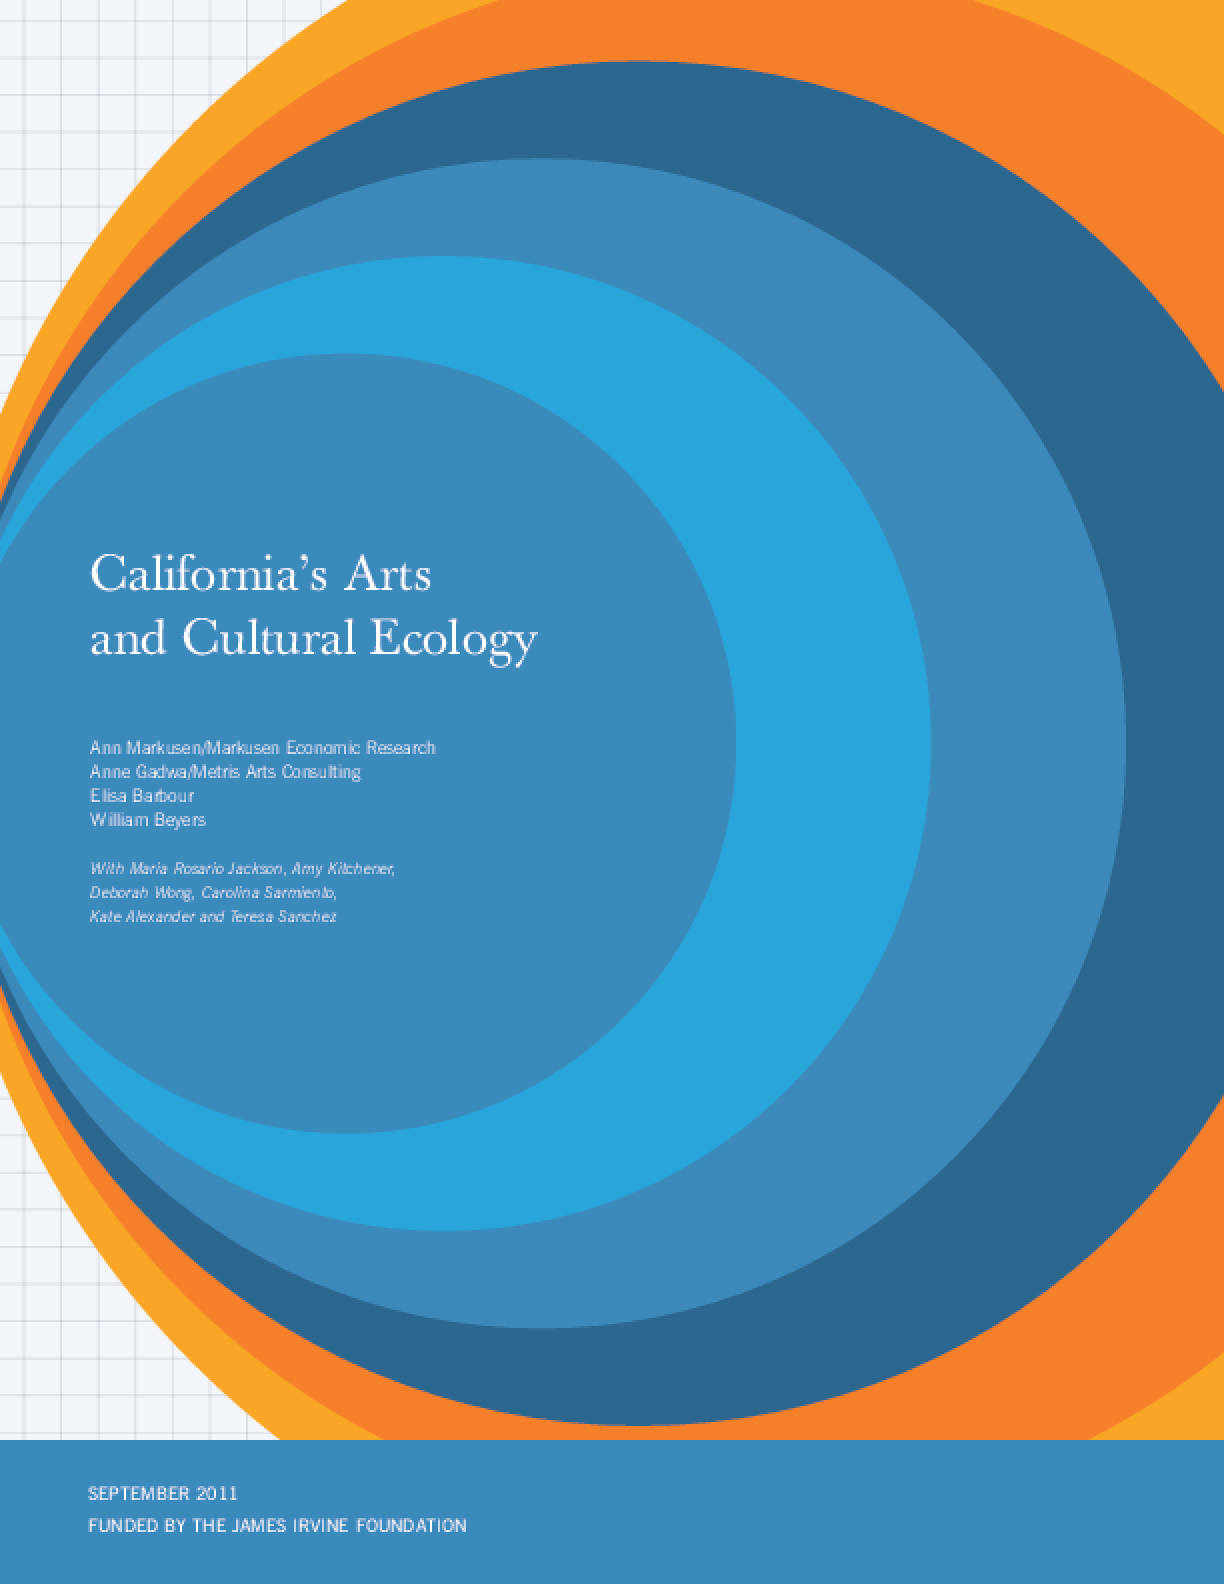 California's Arts and Cultural Ecology